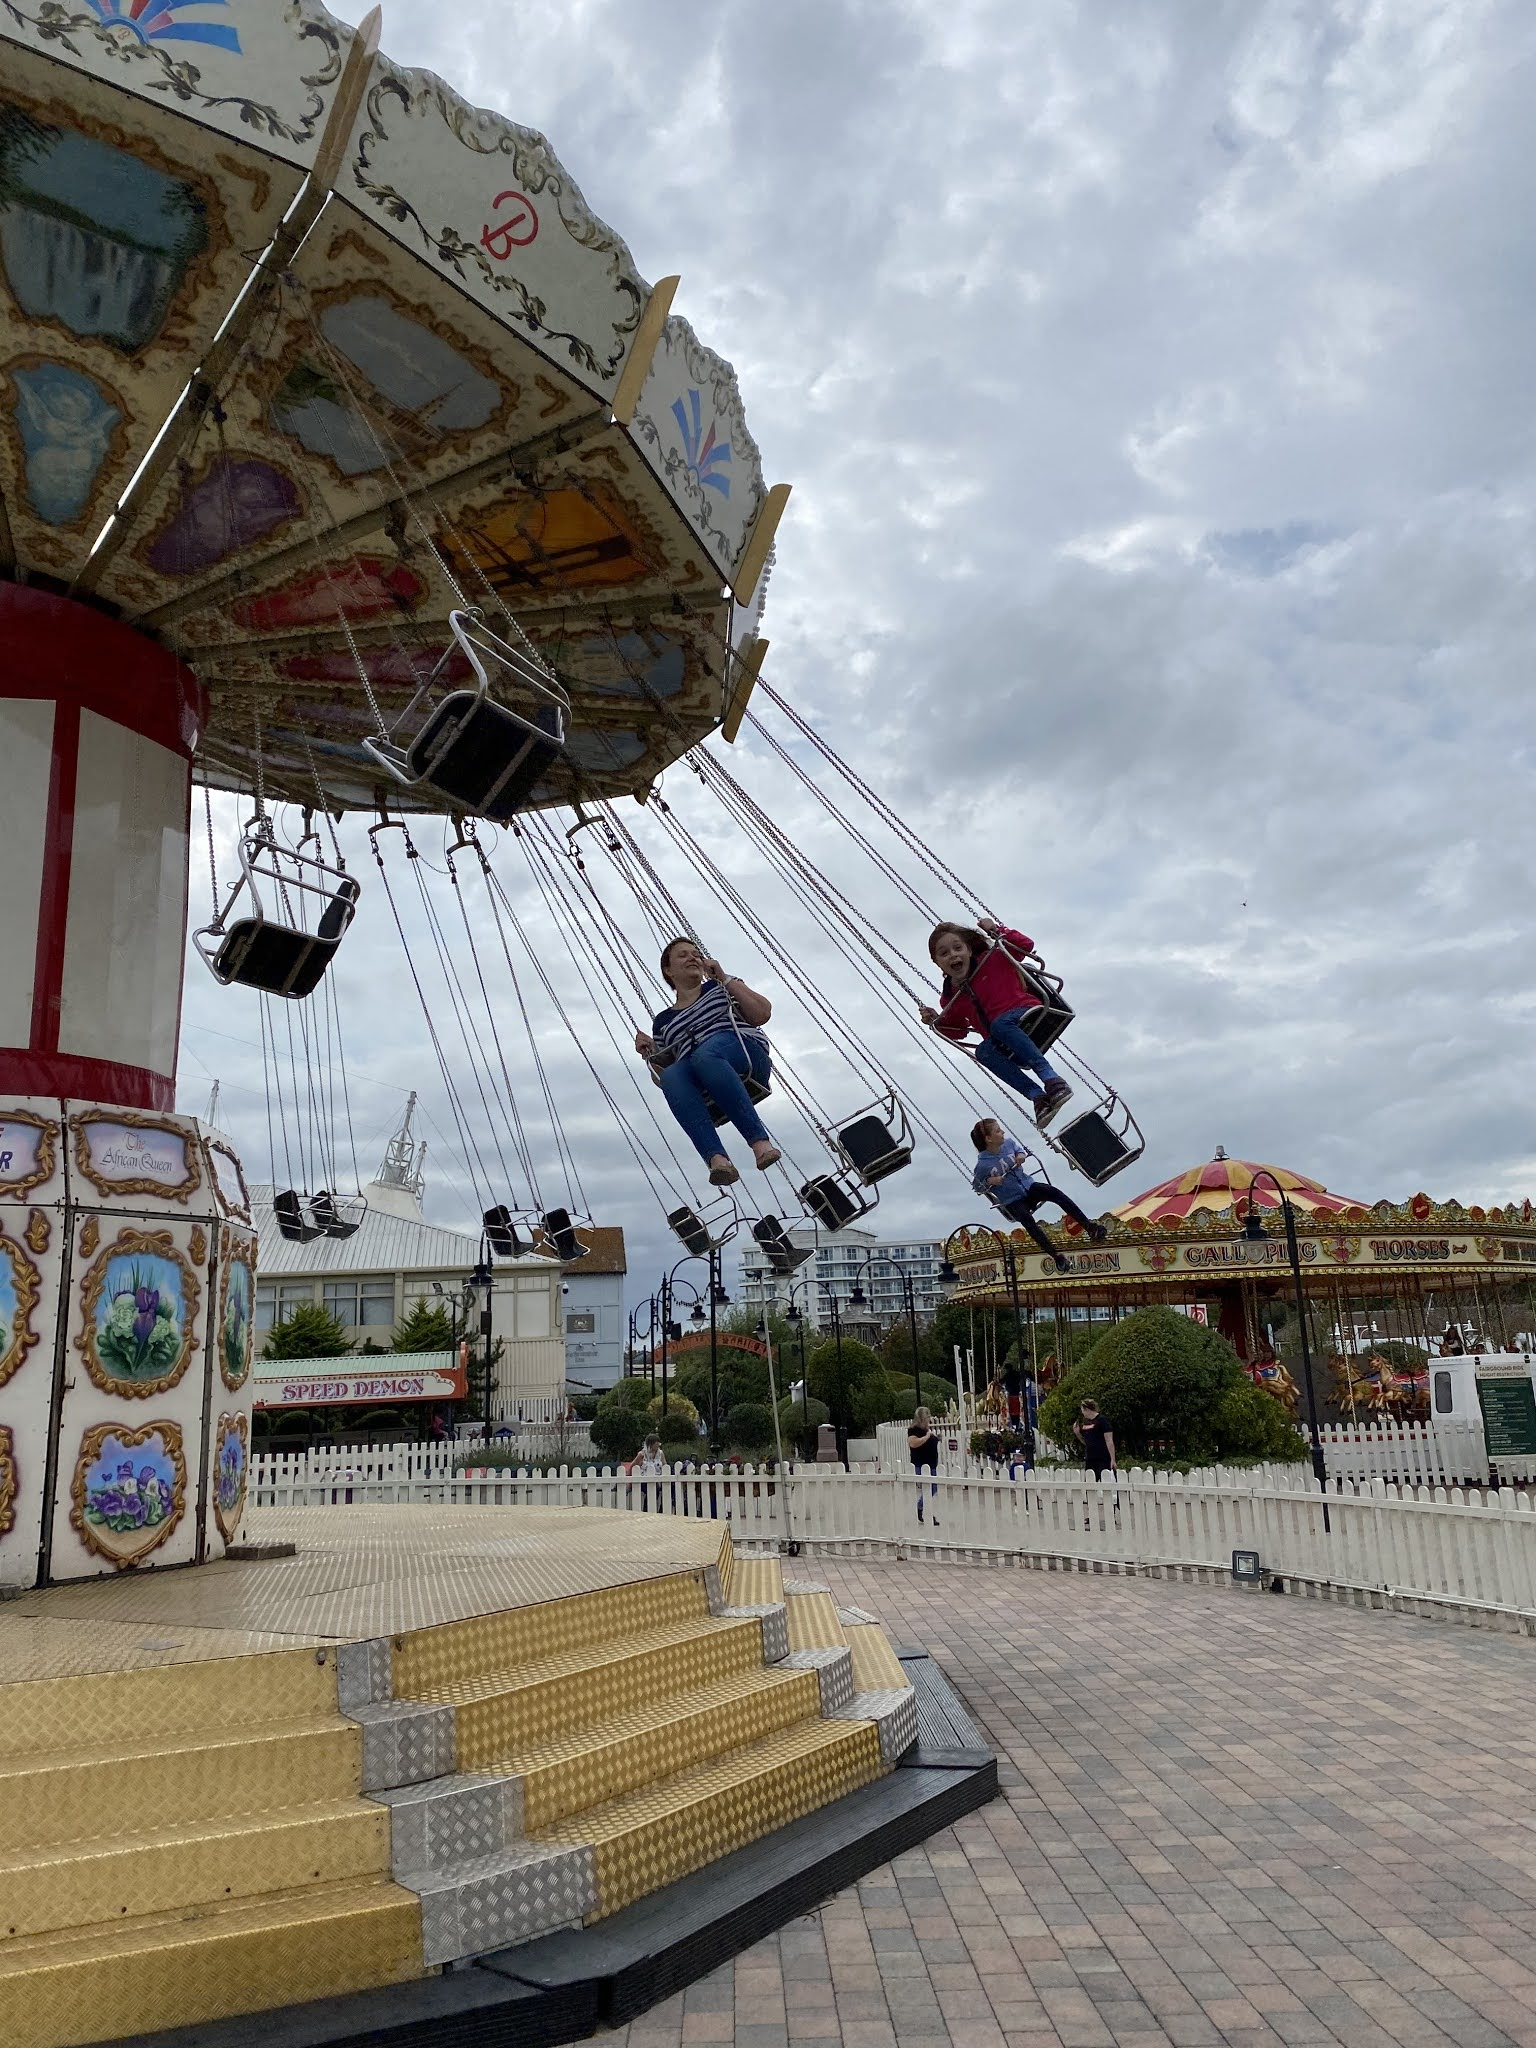 flying on a fairground ride